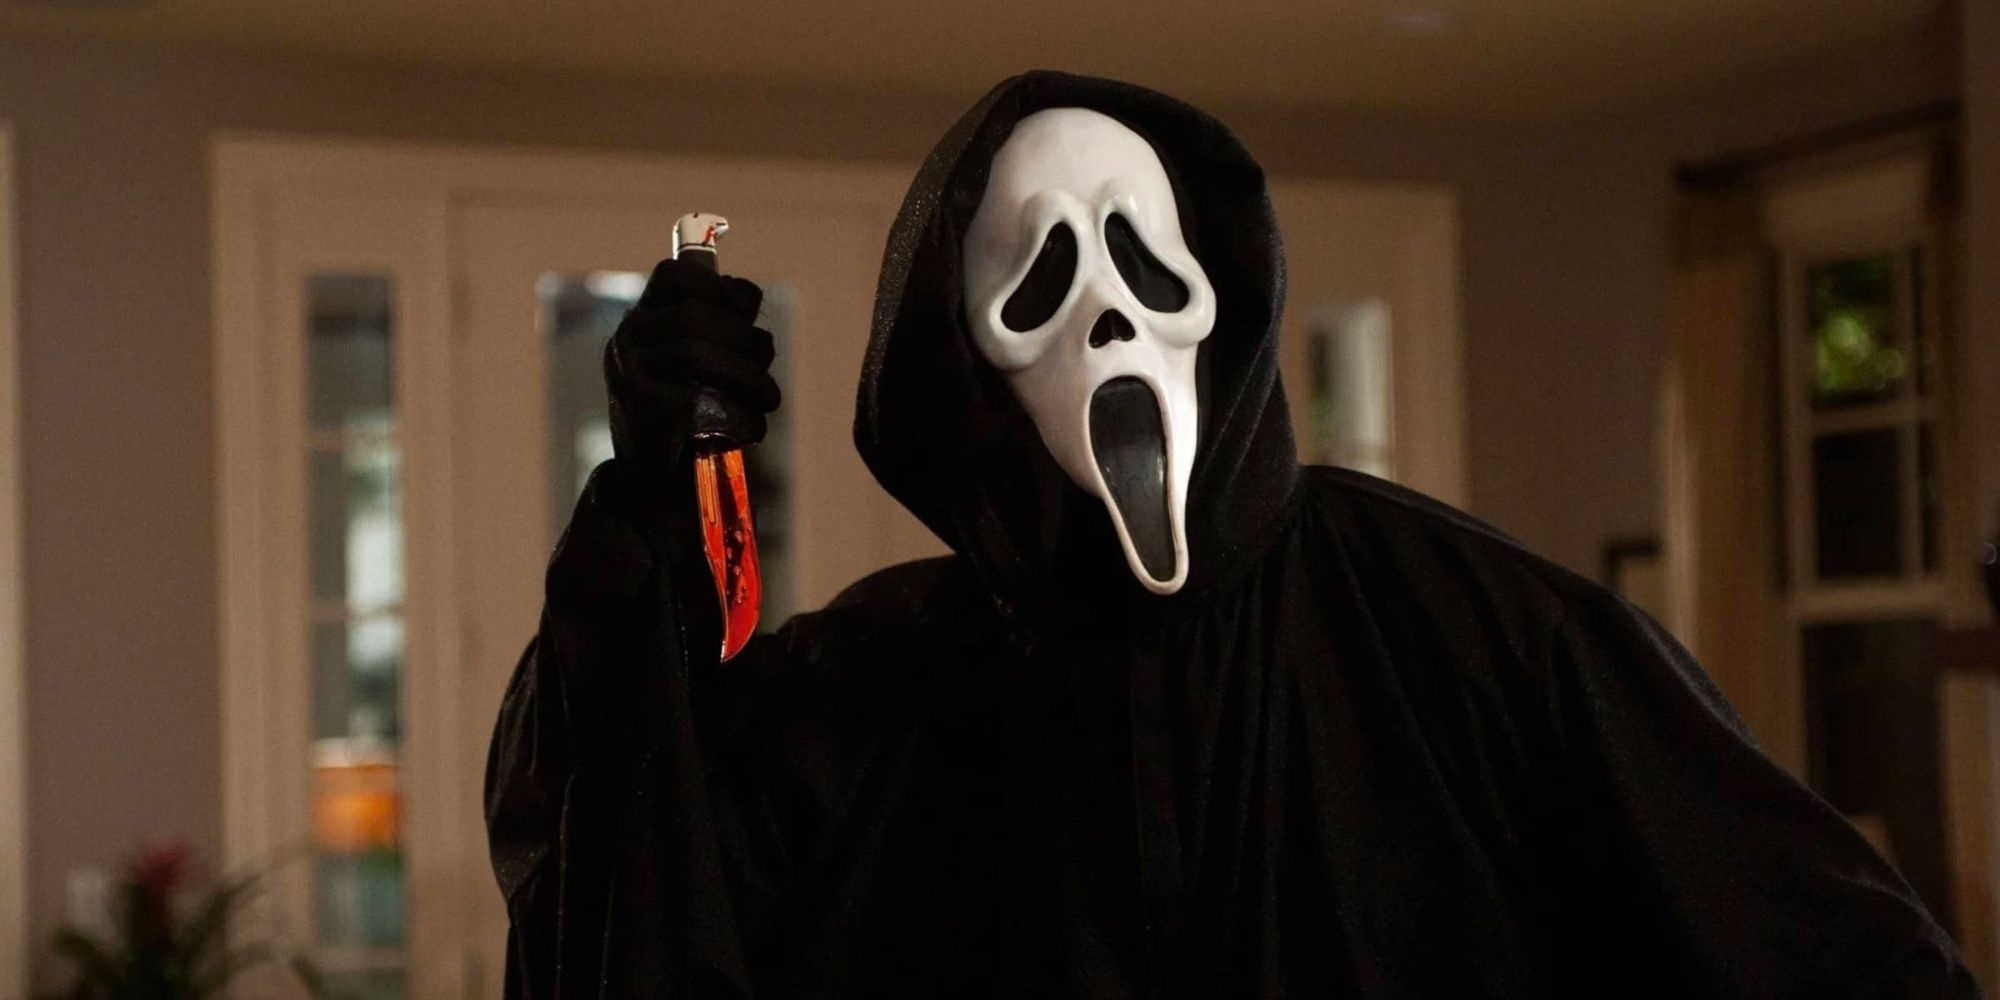 Scream: Blumhouse Exec Scoffs At Reports of a Movie Reboot | CBR